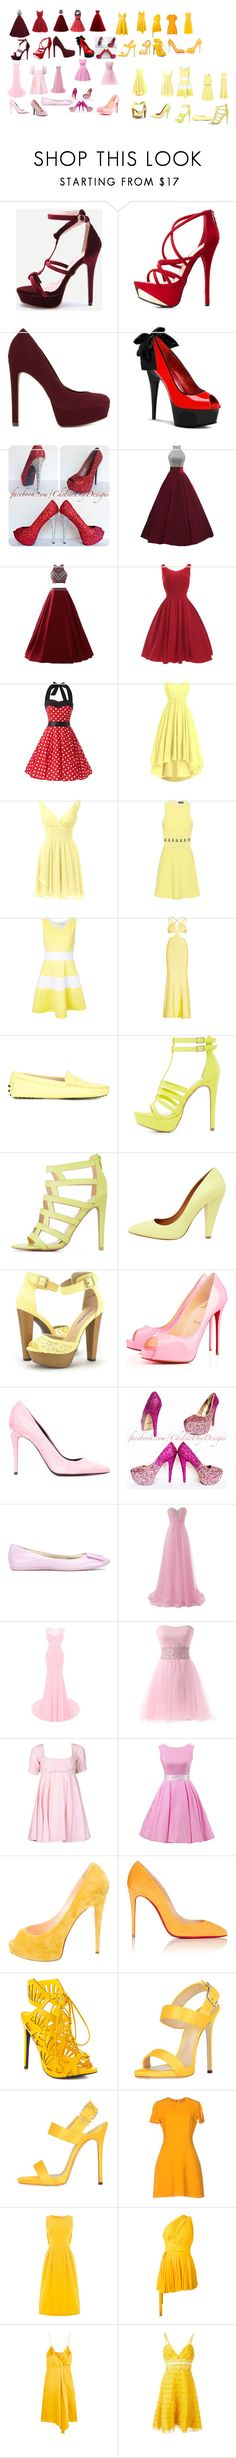 """""""Untitled #351"""" by megibson2005 on Polyvore featuring Charlotte Russe, ALDO, David Koma, Guild Prime, Hervé Léger, Tod's, Qupid, Mulberry, Privé and Alexander Wang"""